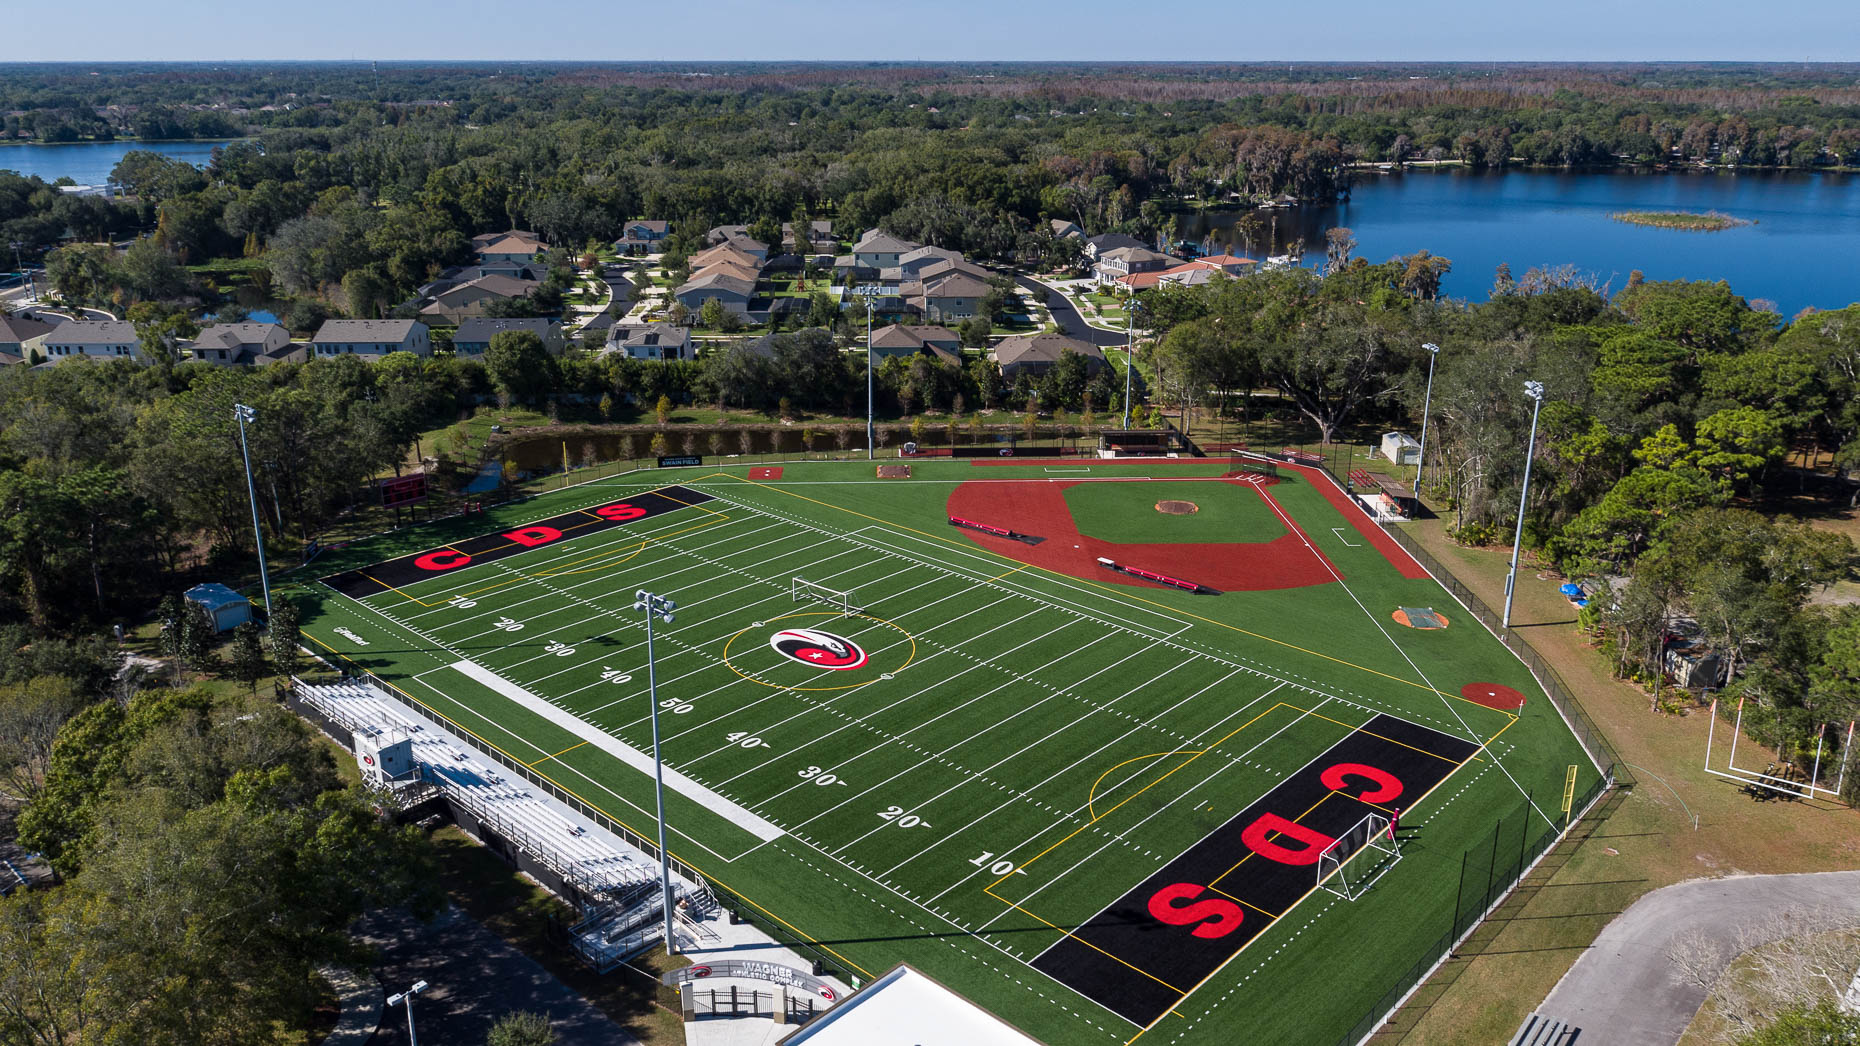 Aerial Carrollwood Day School Sports Complex - Mark Borosch Photography - Tampa, FL